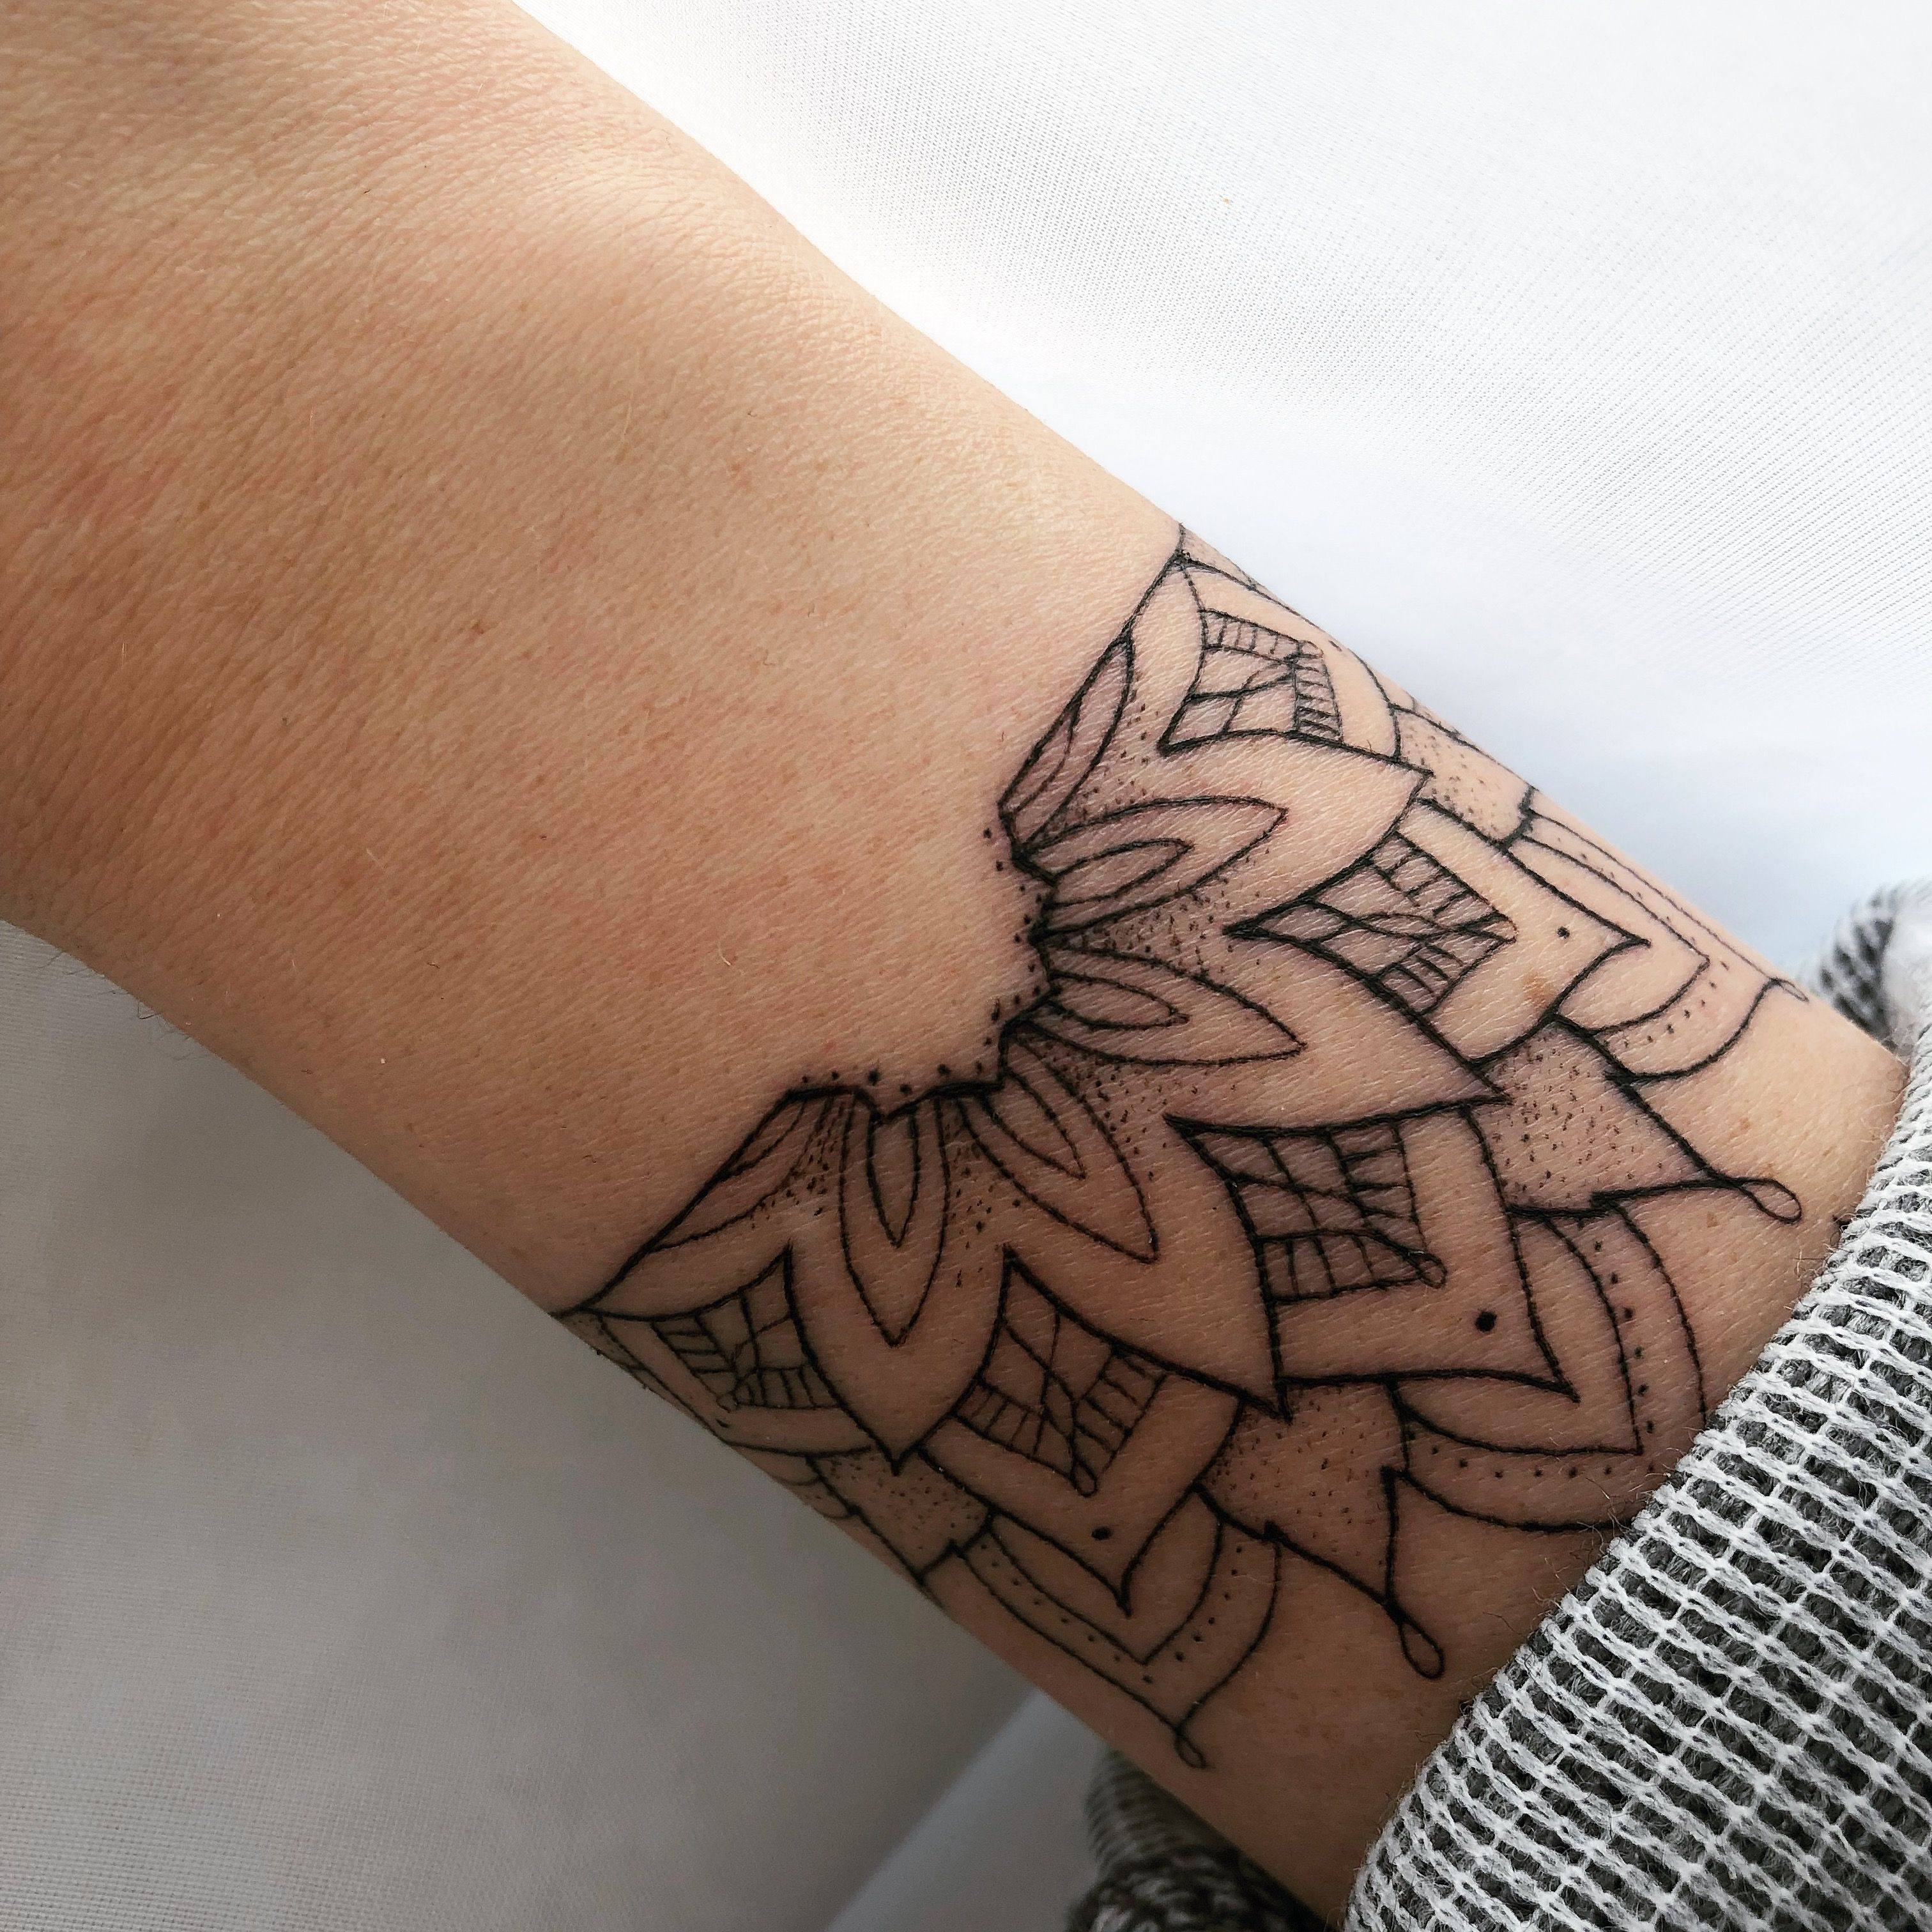 Half Mandala Wrist Tattoo Insta Laurra Jpg Tattoos For Guys Mandala Wrist Tattoo Wrist Tattoos Girls